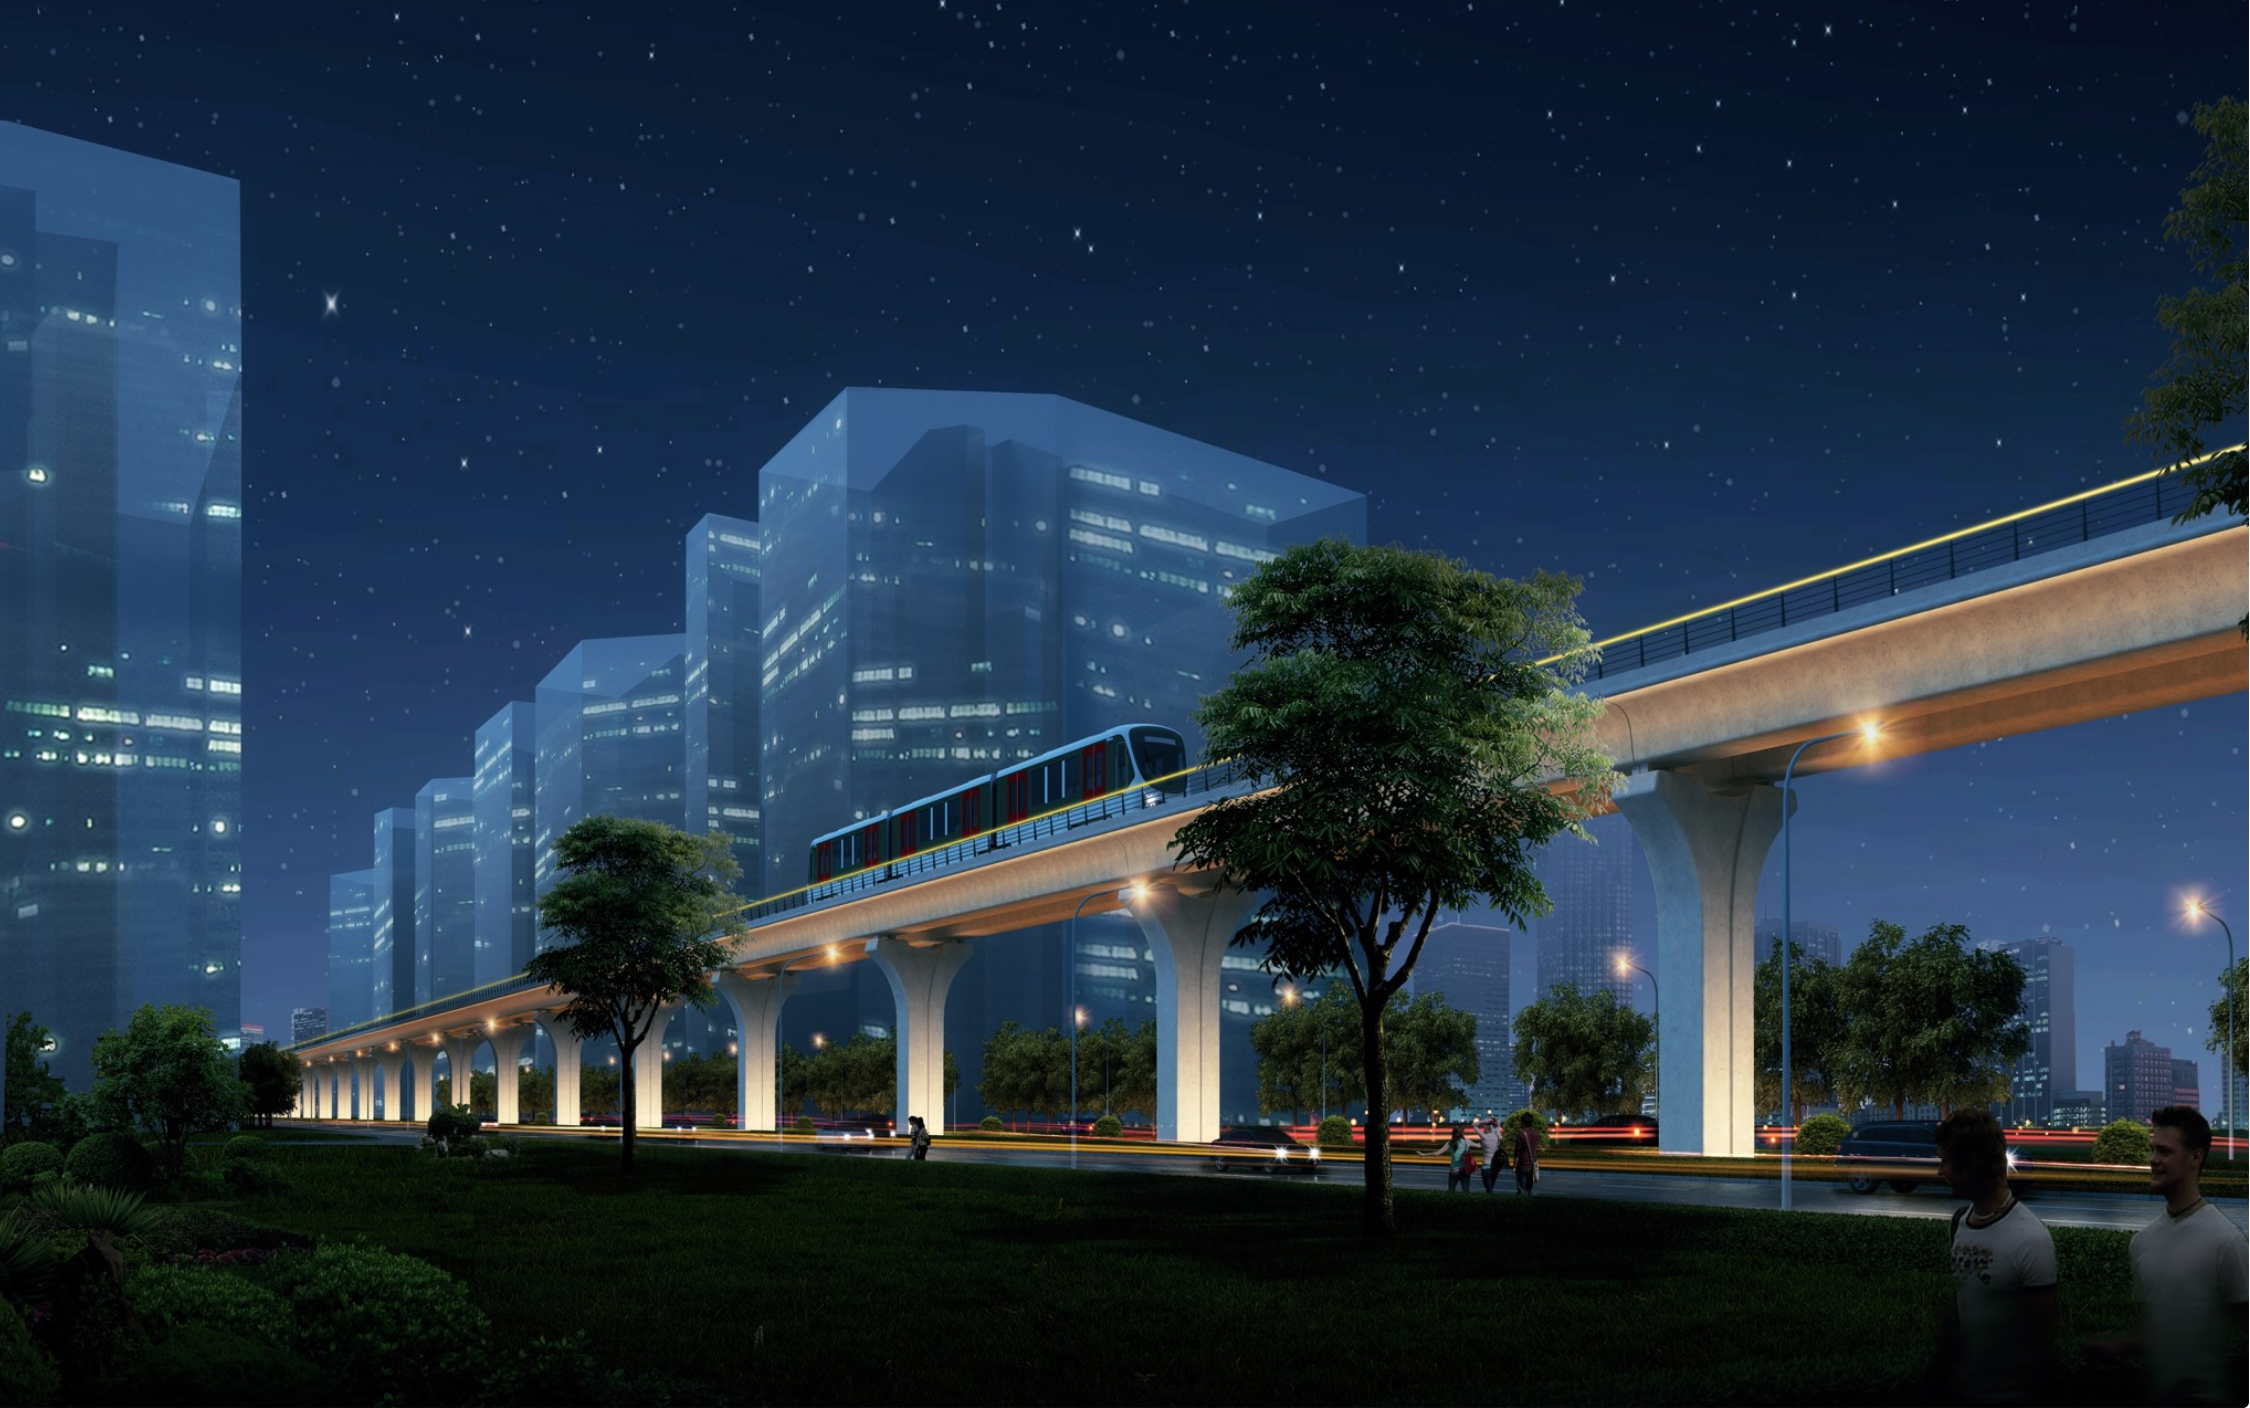 The rail deal: A projection of what the LRT track could one day look like. (Photo: Astana LRT website)